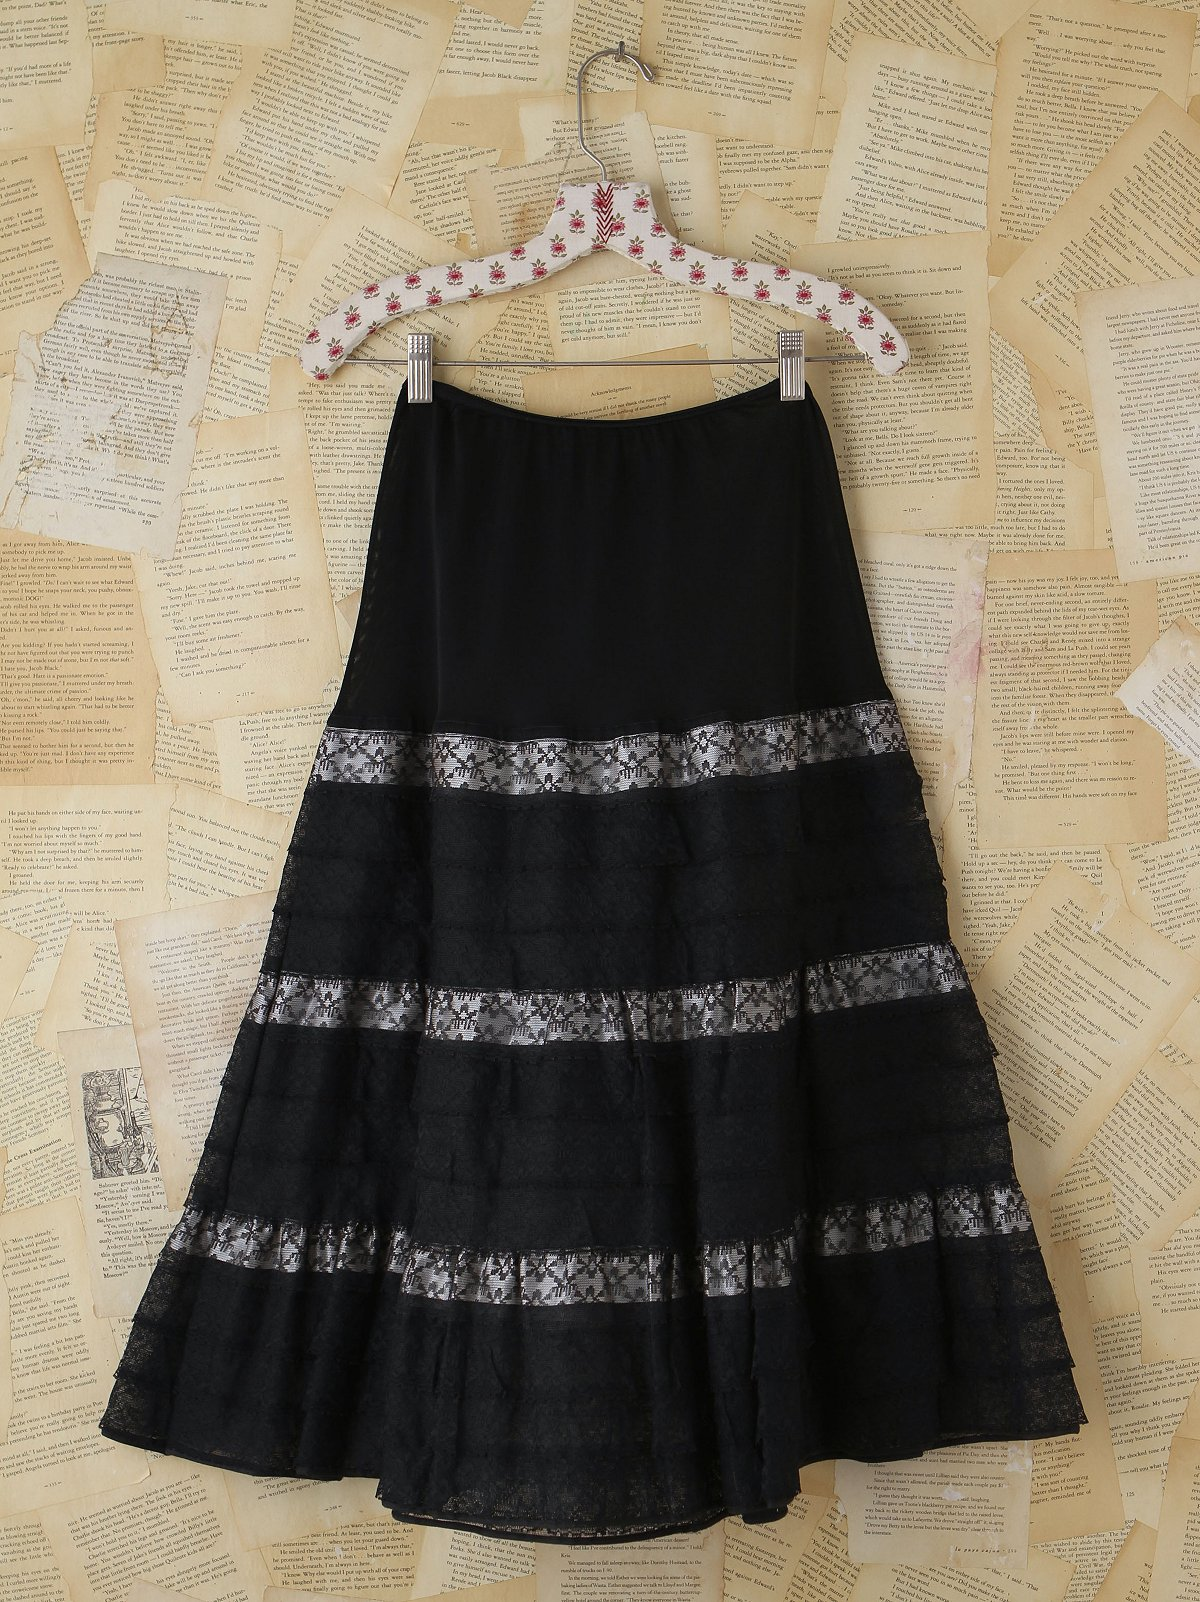 Vintage Black Lace and Tulle Skirt